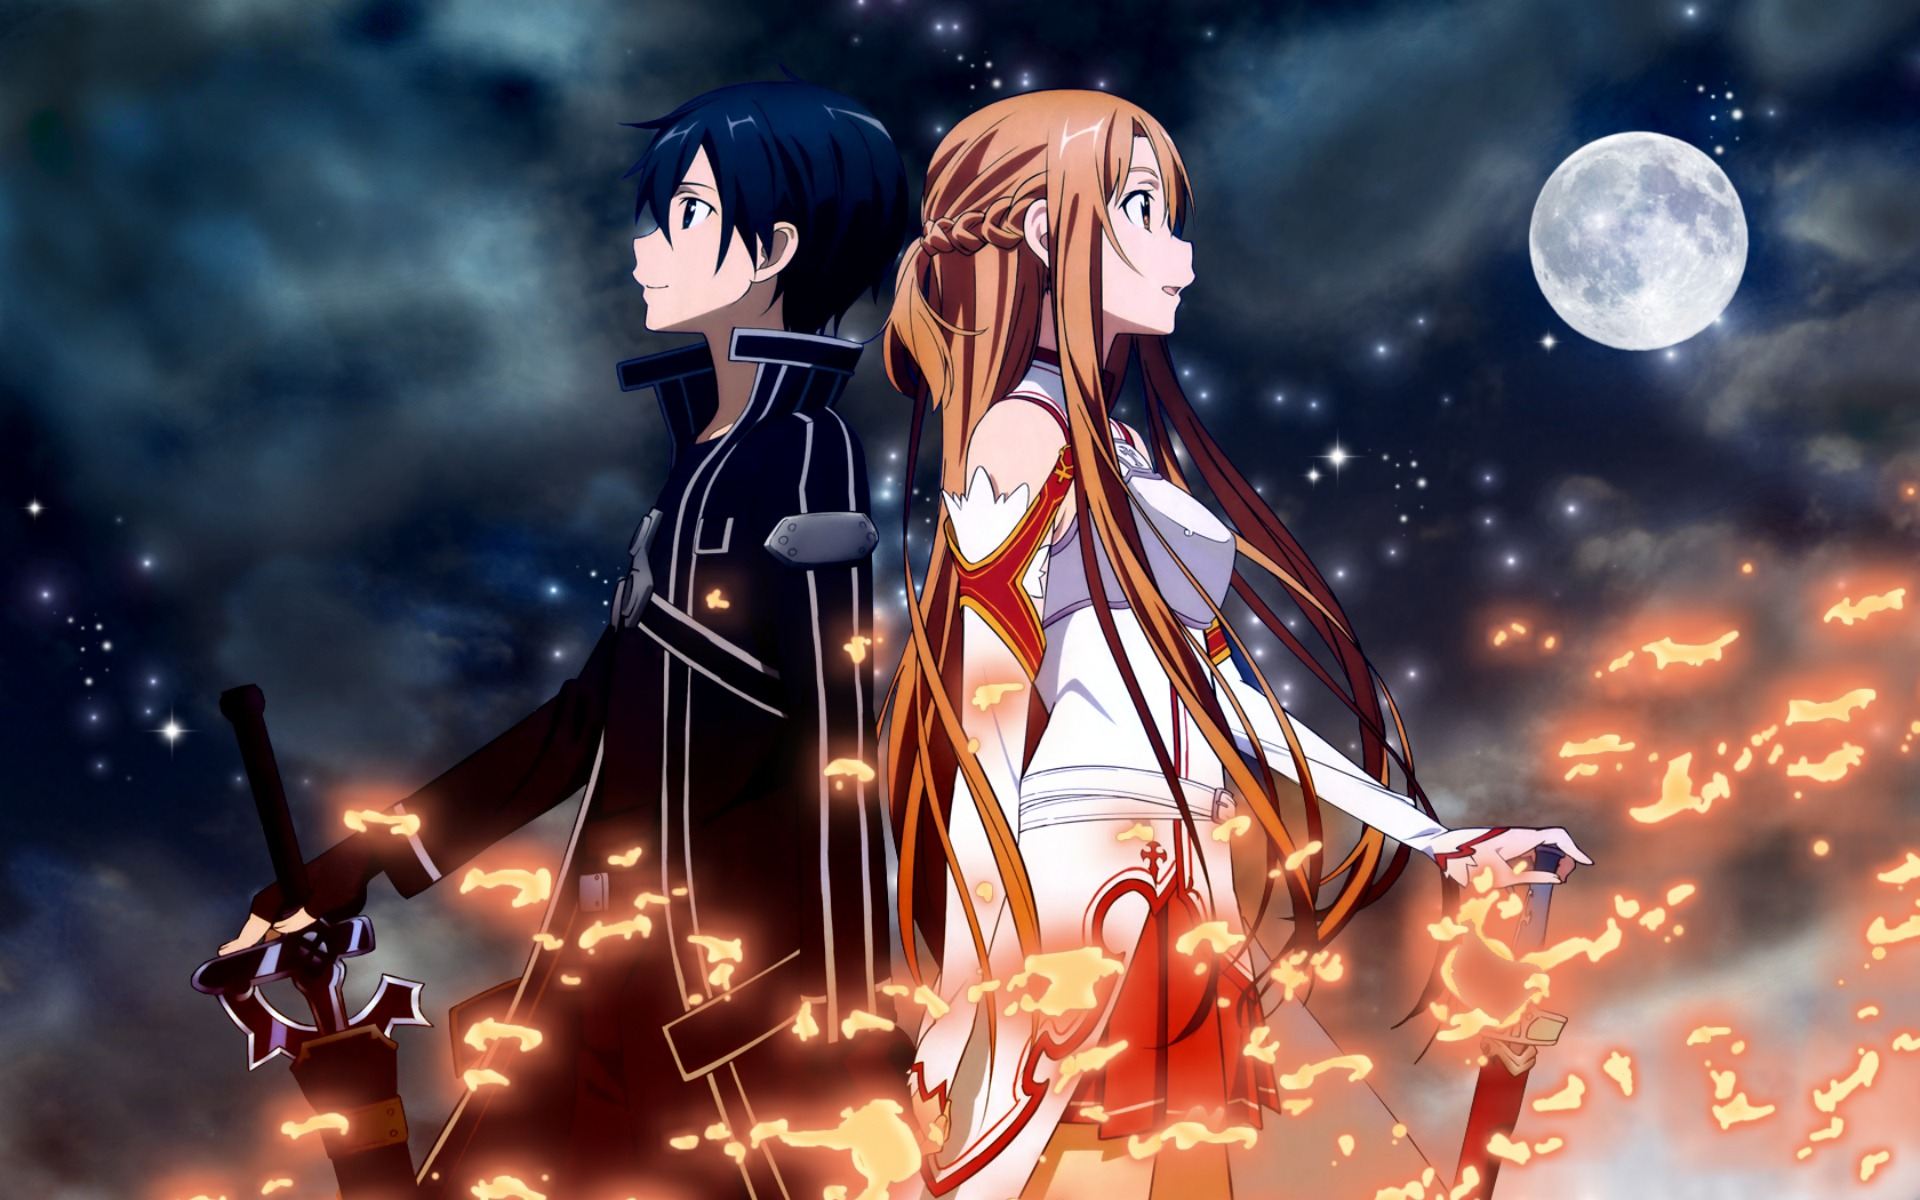 Art Online images SAO HD wallpaper and background photos 34784898 1920x1200